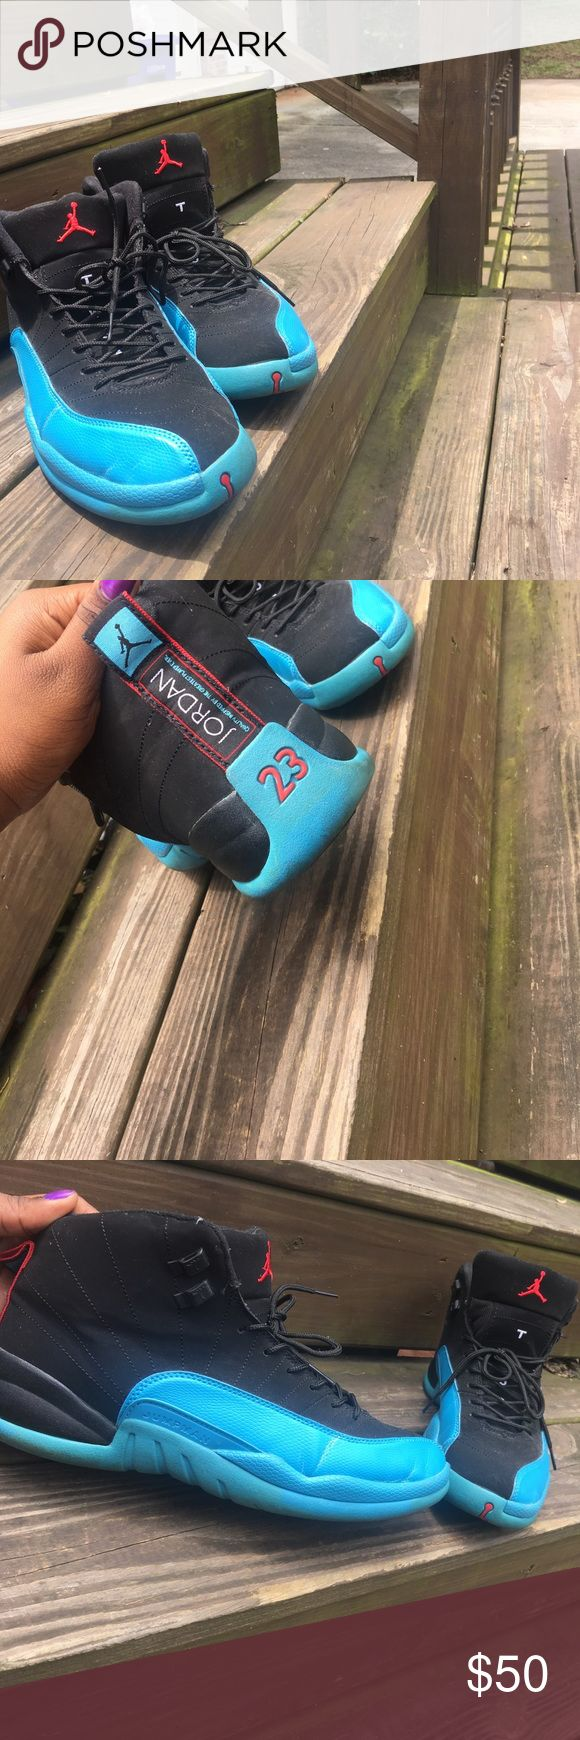 Air Jordan 12 Black and Blue. Size 10 in Men Worn twice with non noticeable brown marks that can easily be washed. Teal/ blue color. Size 10 in men. No trade Air Jordan Shoes Sneakers